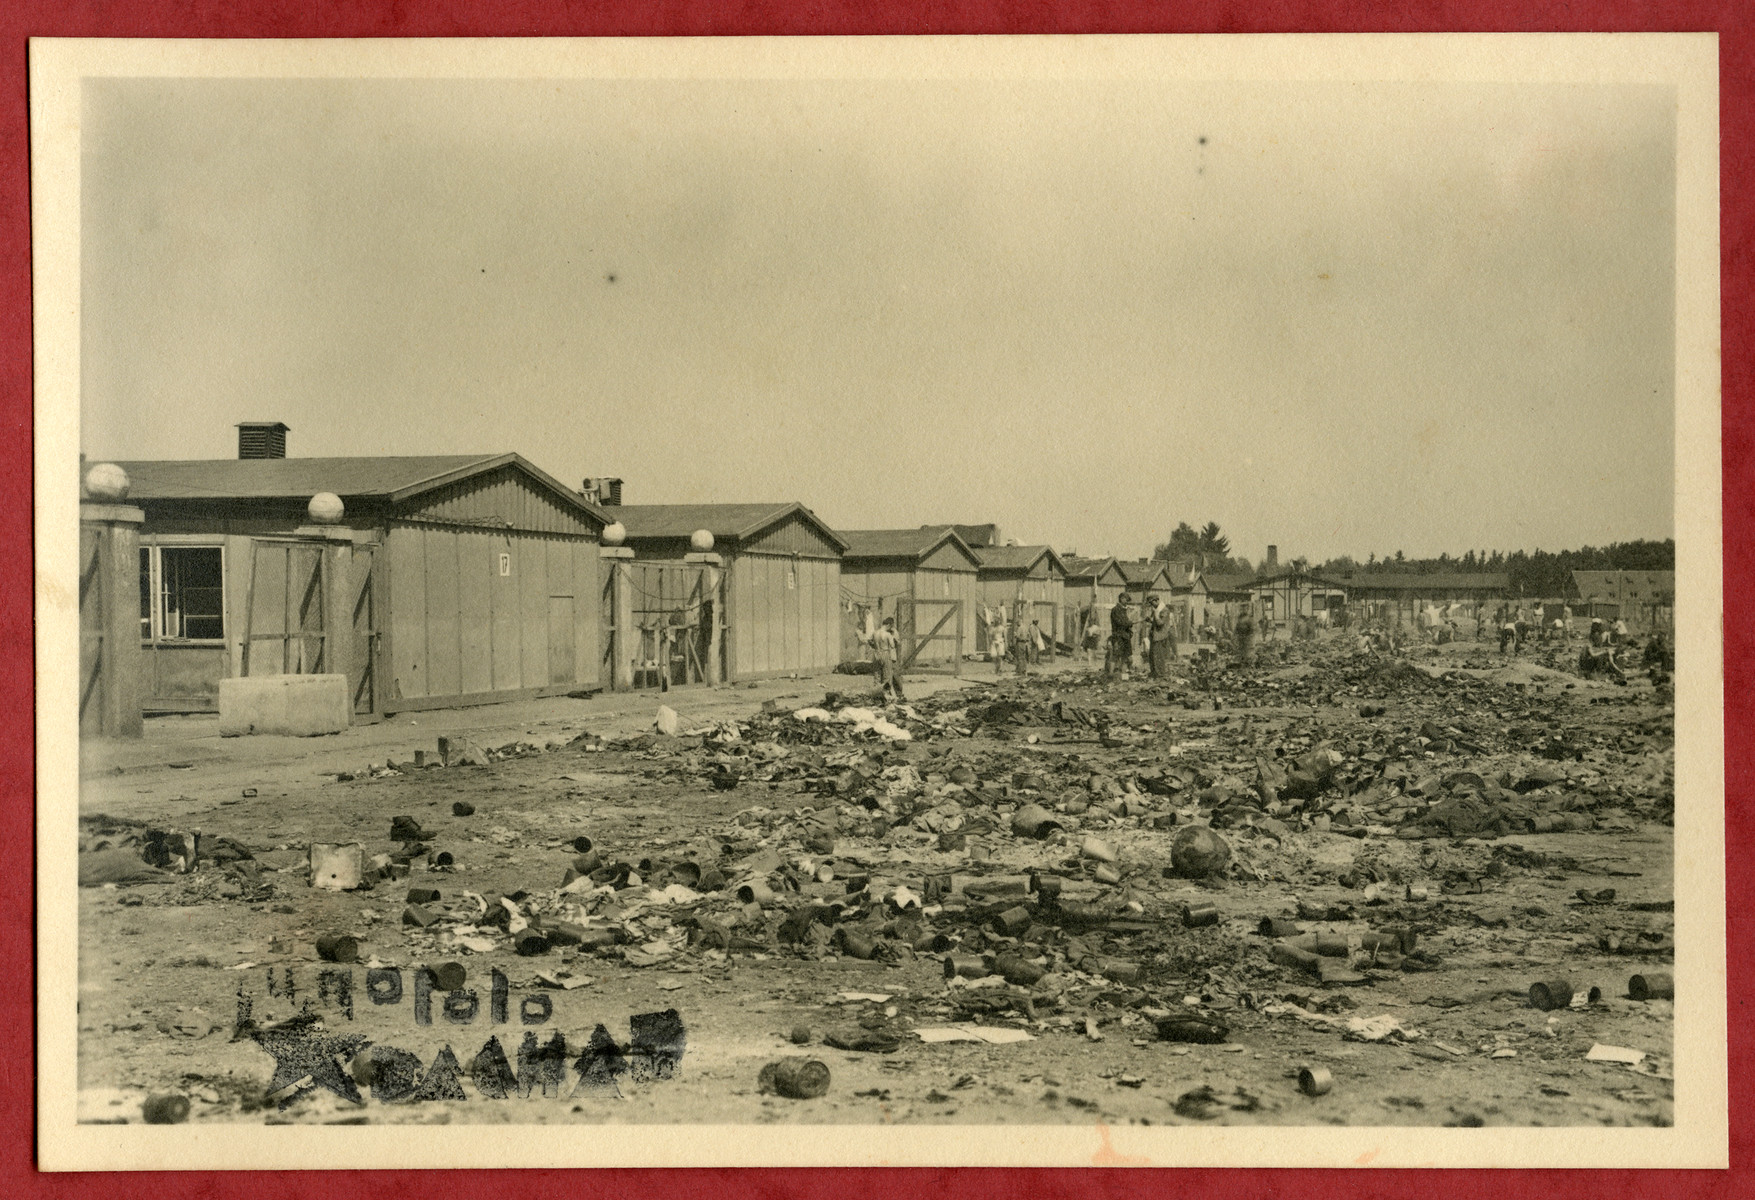 Photograph showing debris outside a row of barracks in the Dachau concentraton camp pasted into an album presented to Lt. Col. Martin Joyce by the Yugoslav prisoner committee.